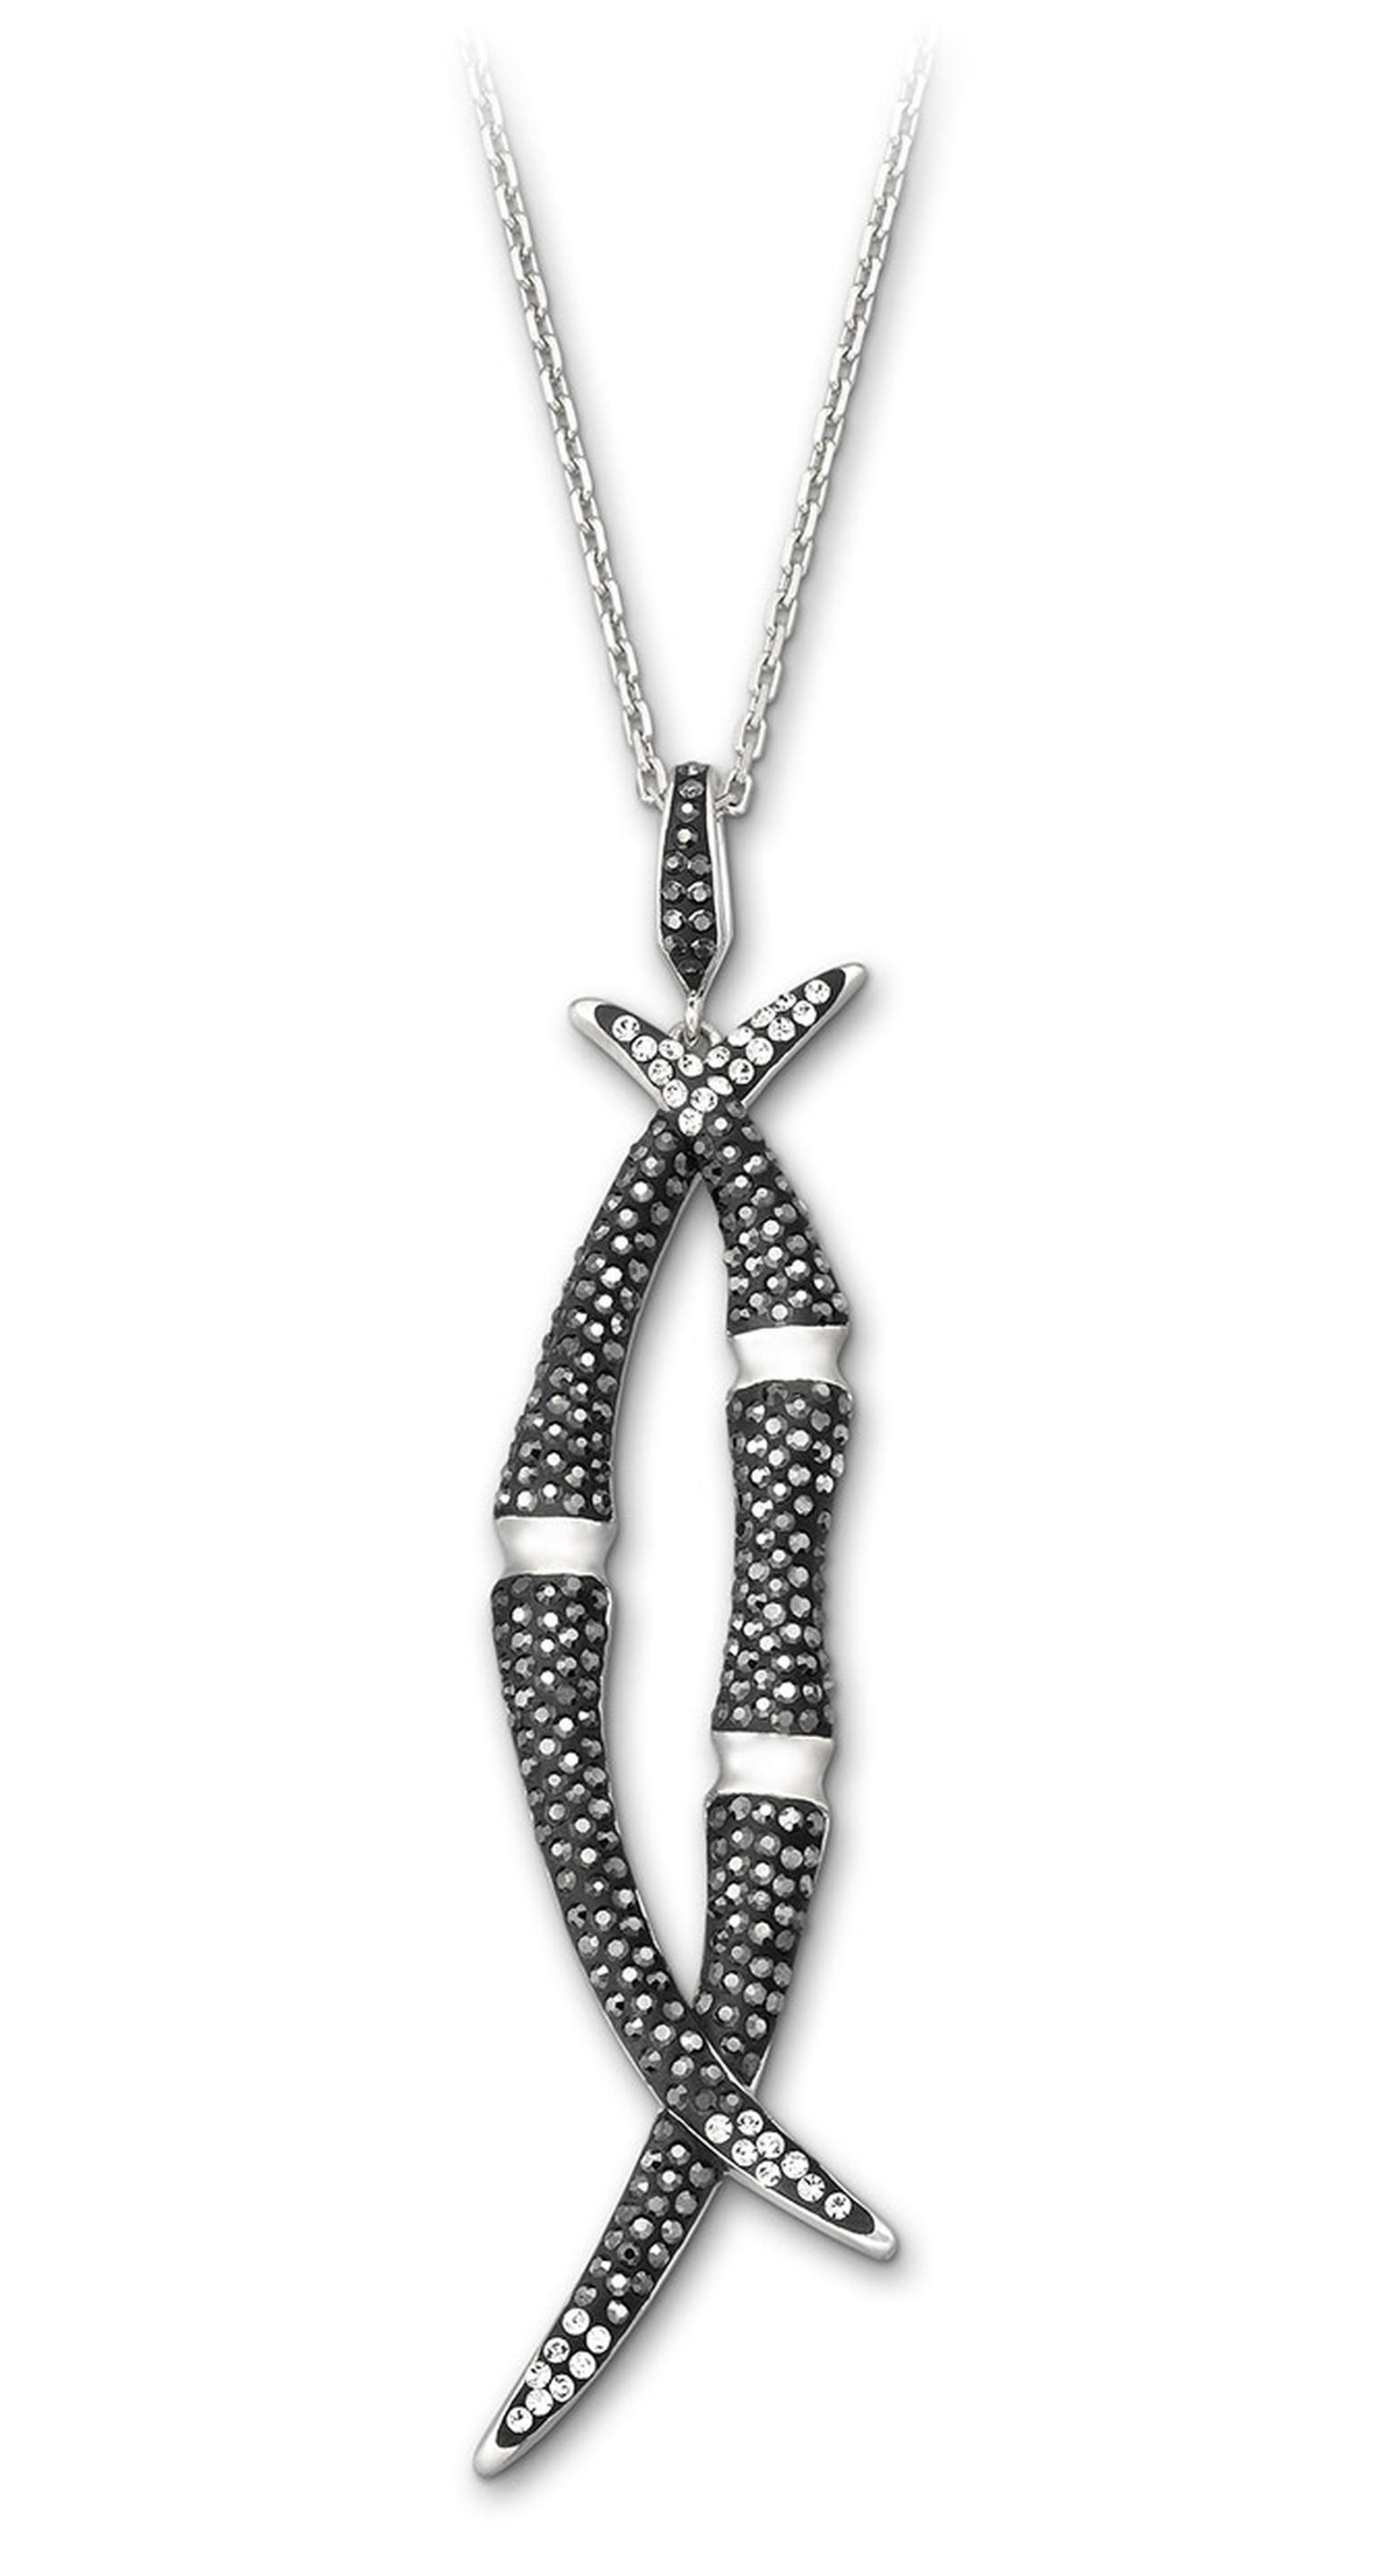 Stephen-Webster-Black-Bamboo-pendant